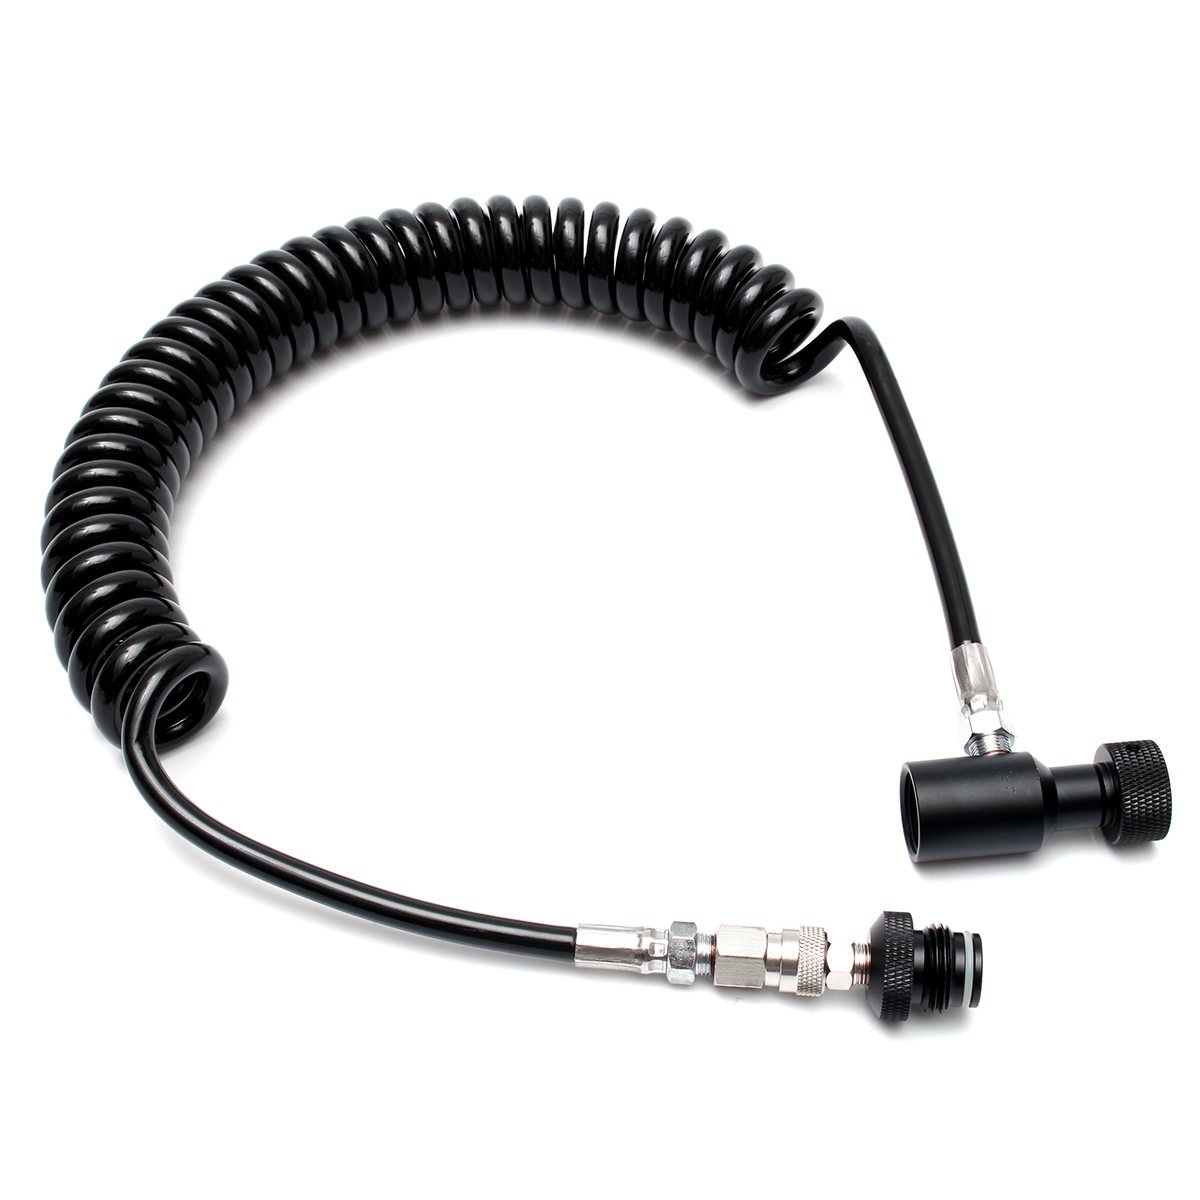 Remote Thick  High Pressure Coiled Hose ASA Quick Release TOOL HPA CO2 Paintball Tank Heavy  With Quick Disconnect